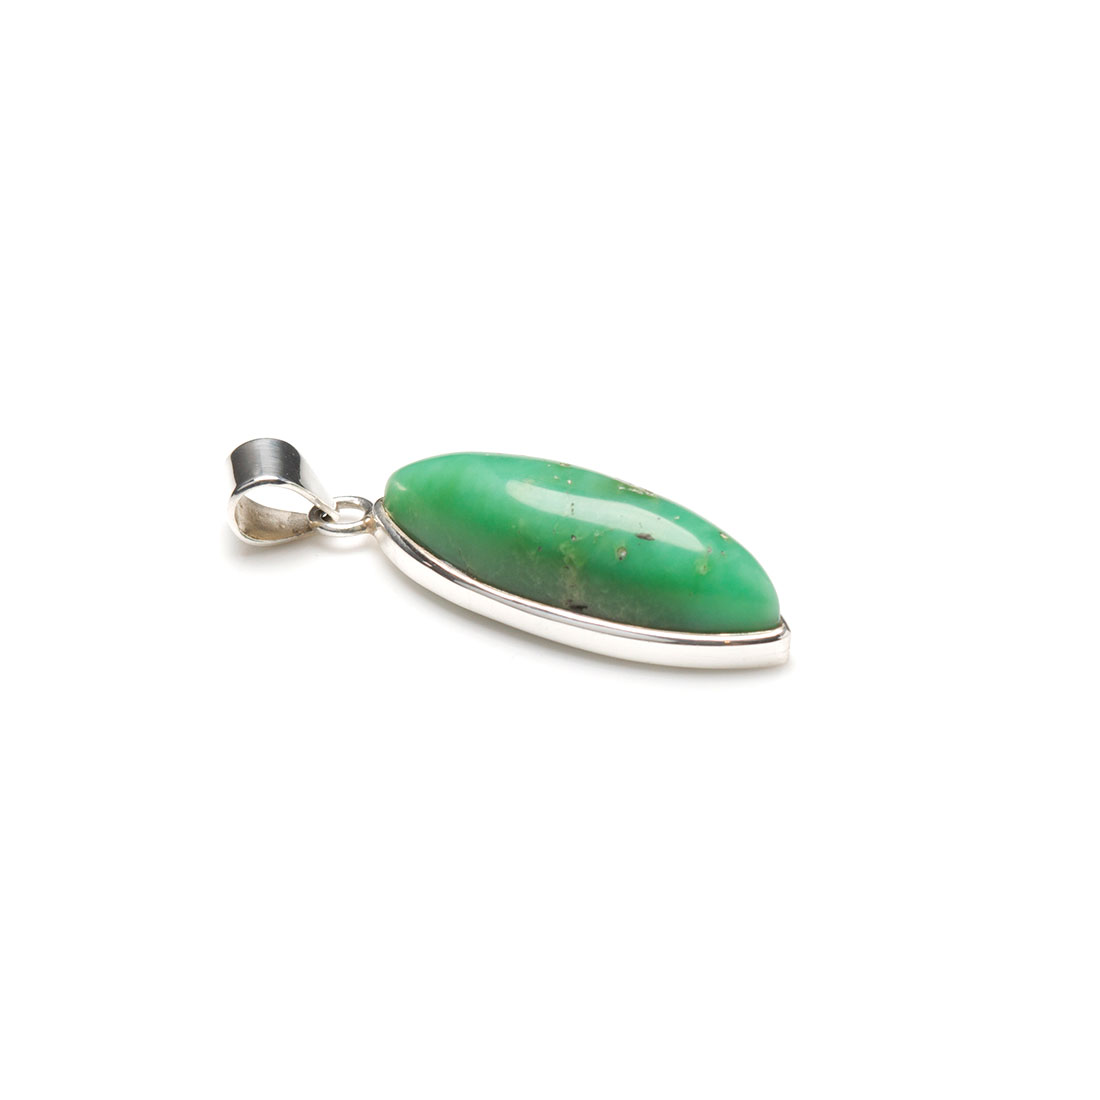 marquise shaped sterling silver pendant featuring a polished chrysoprase gemstone